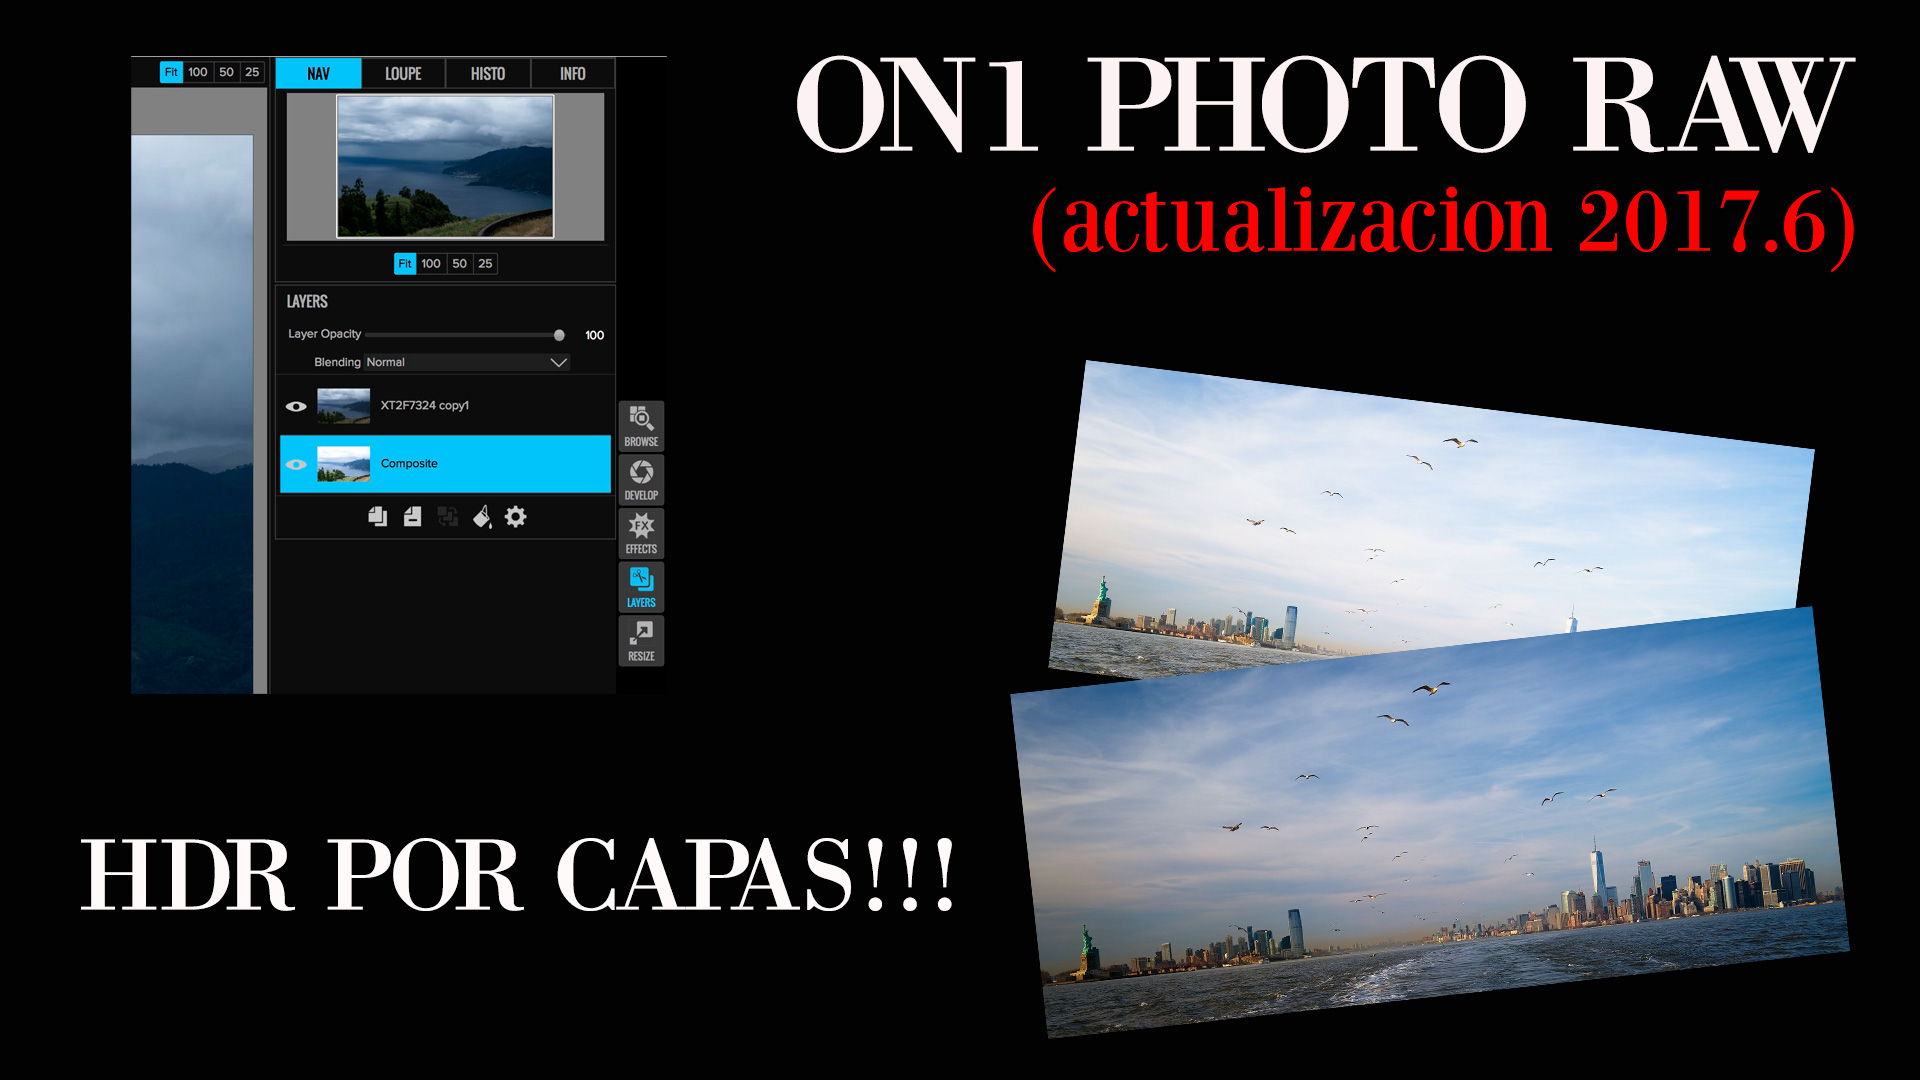 PHOTO RAW (actualización 2017.6) y HDR por capas!